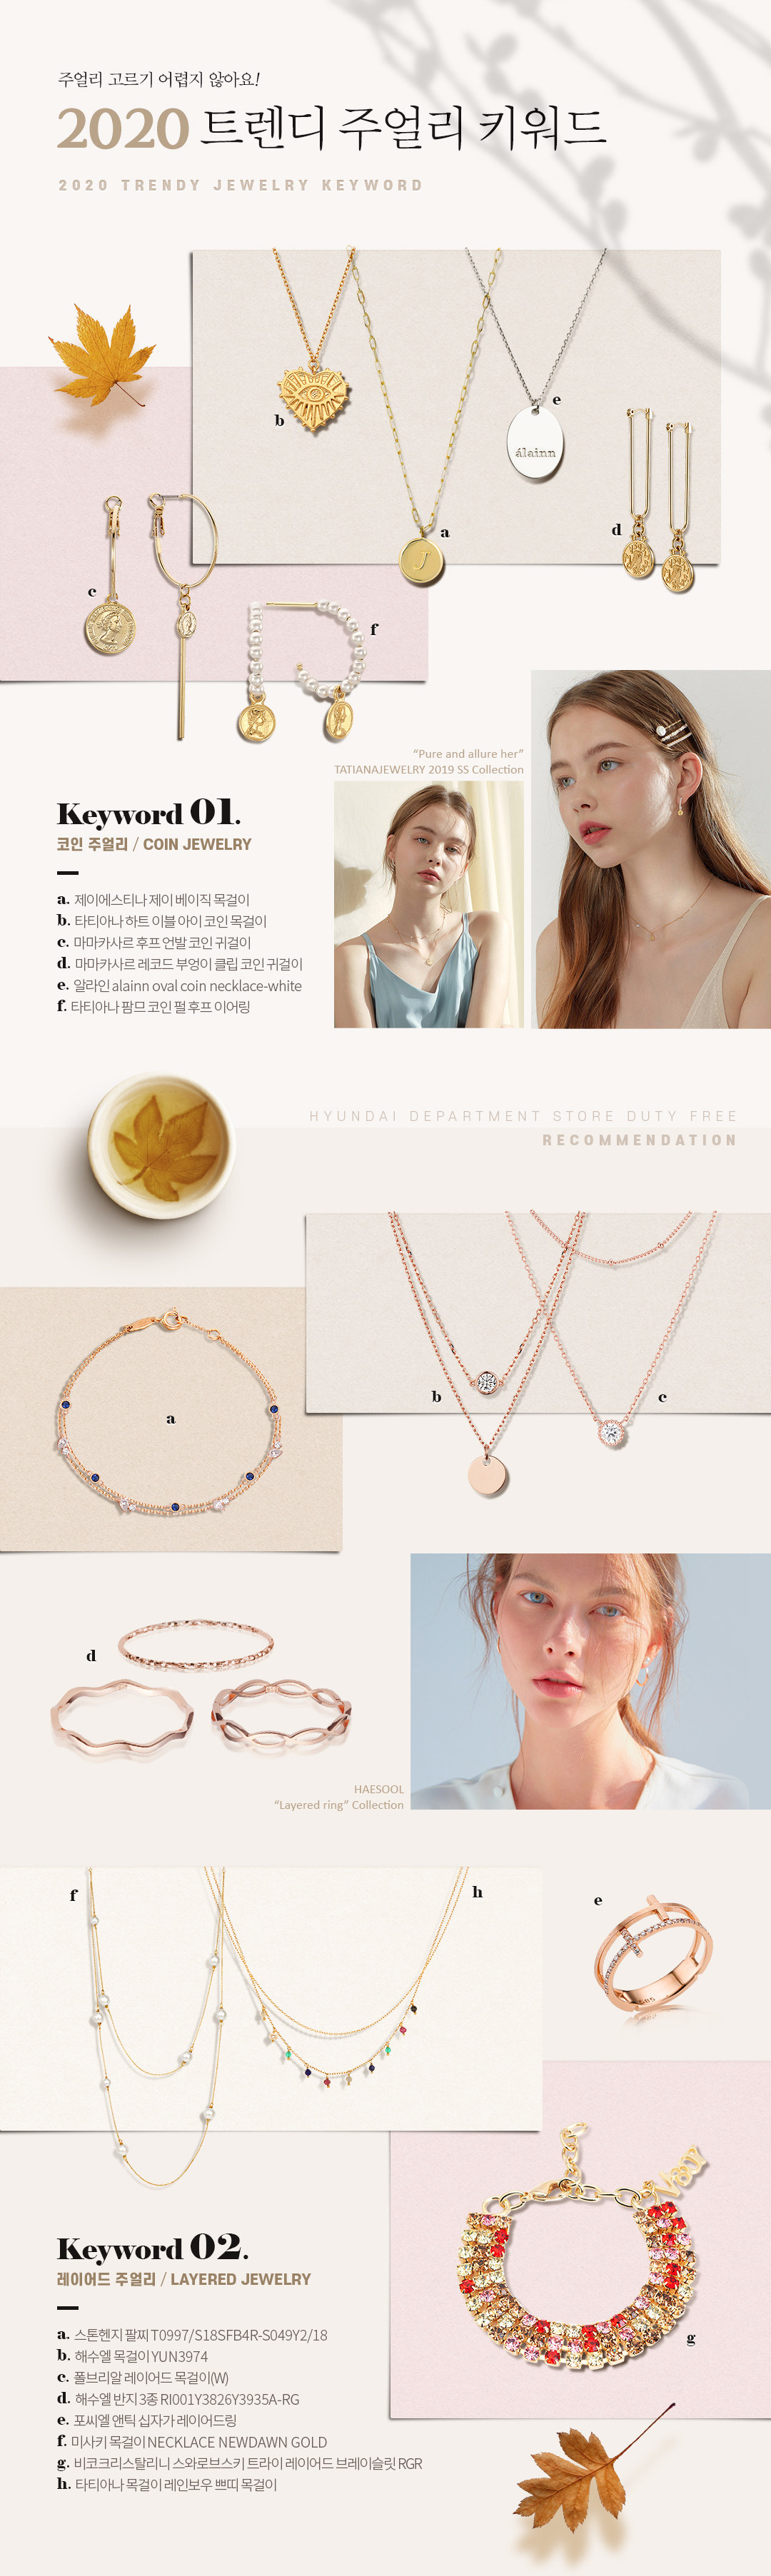 Coin JEWELRY